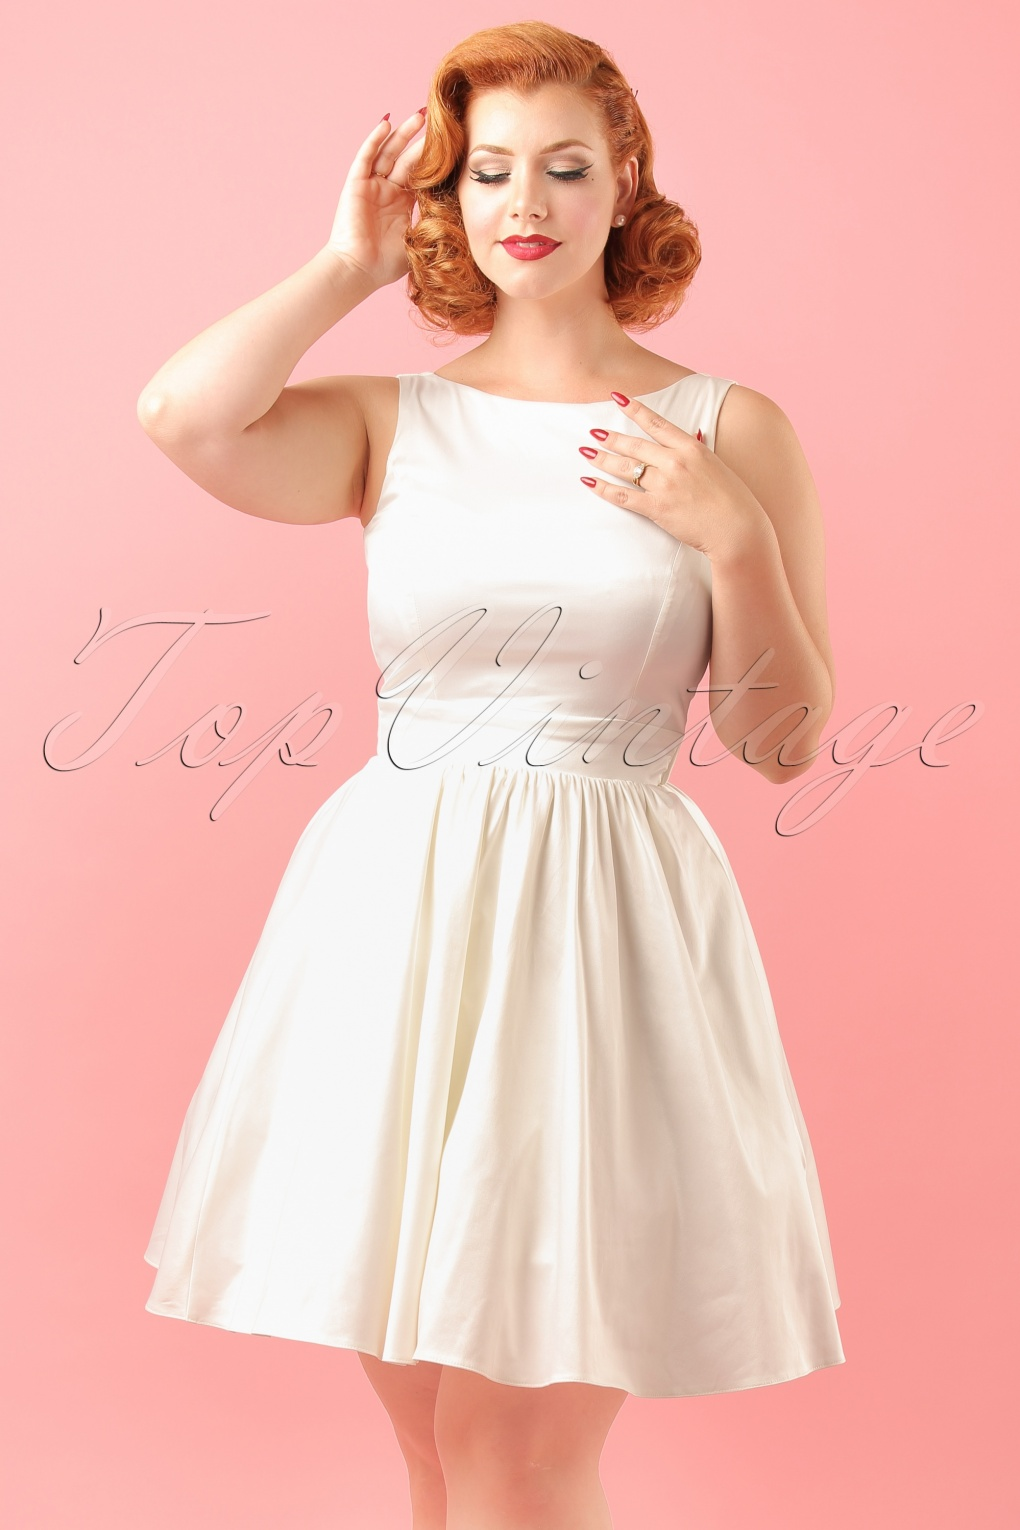 Vintage Inspired Wedding Dresses 50s Lina Wedding Tea Dress in Ivory Satin £138.95 AT vintagedancer.com